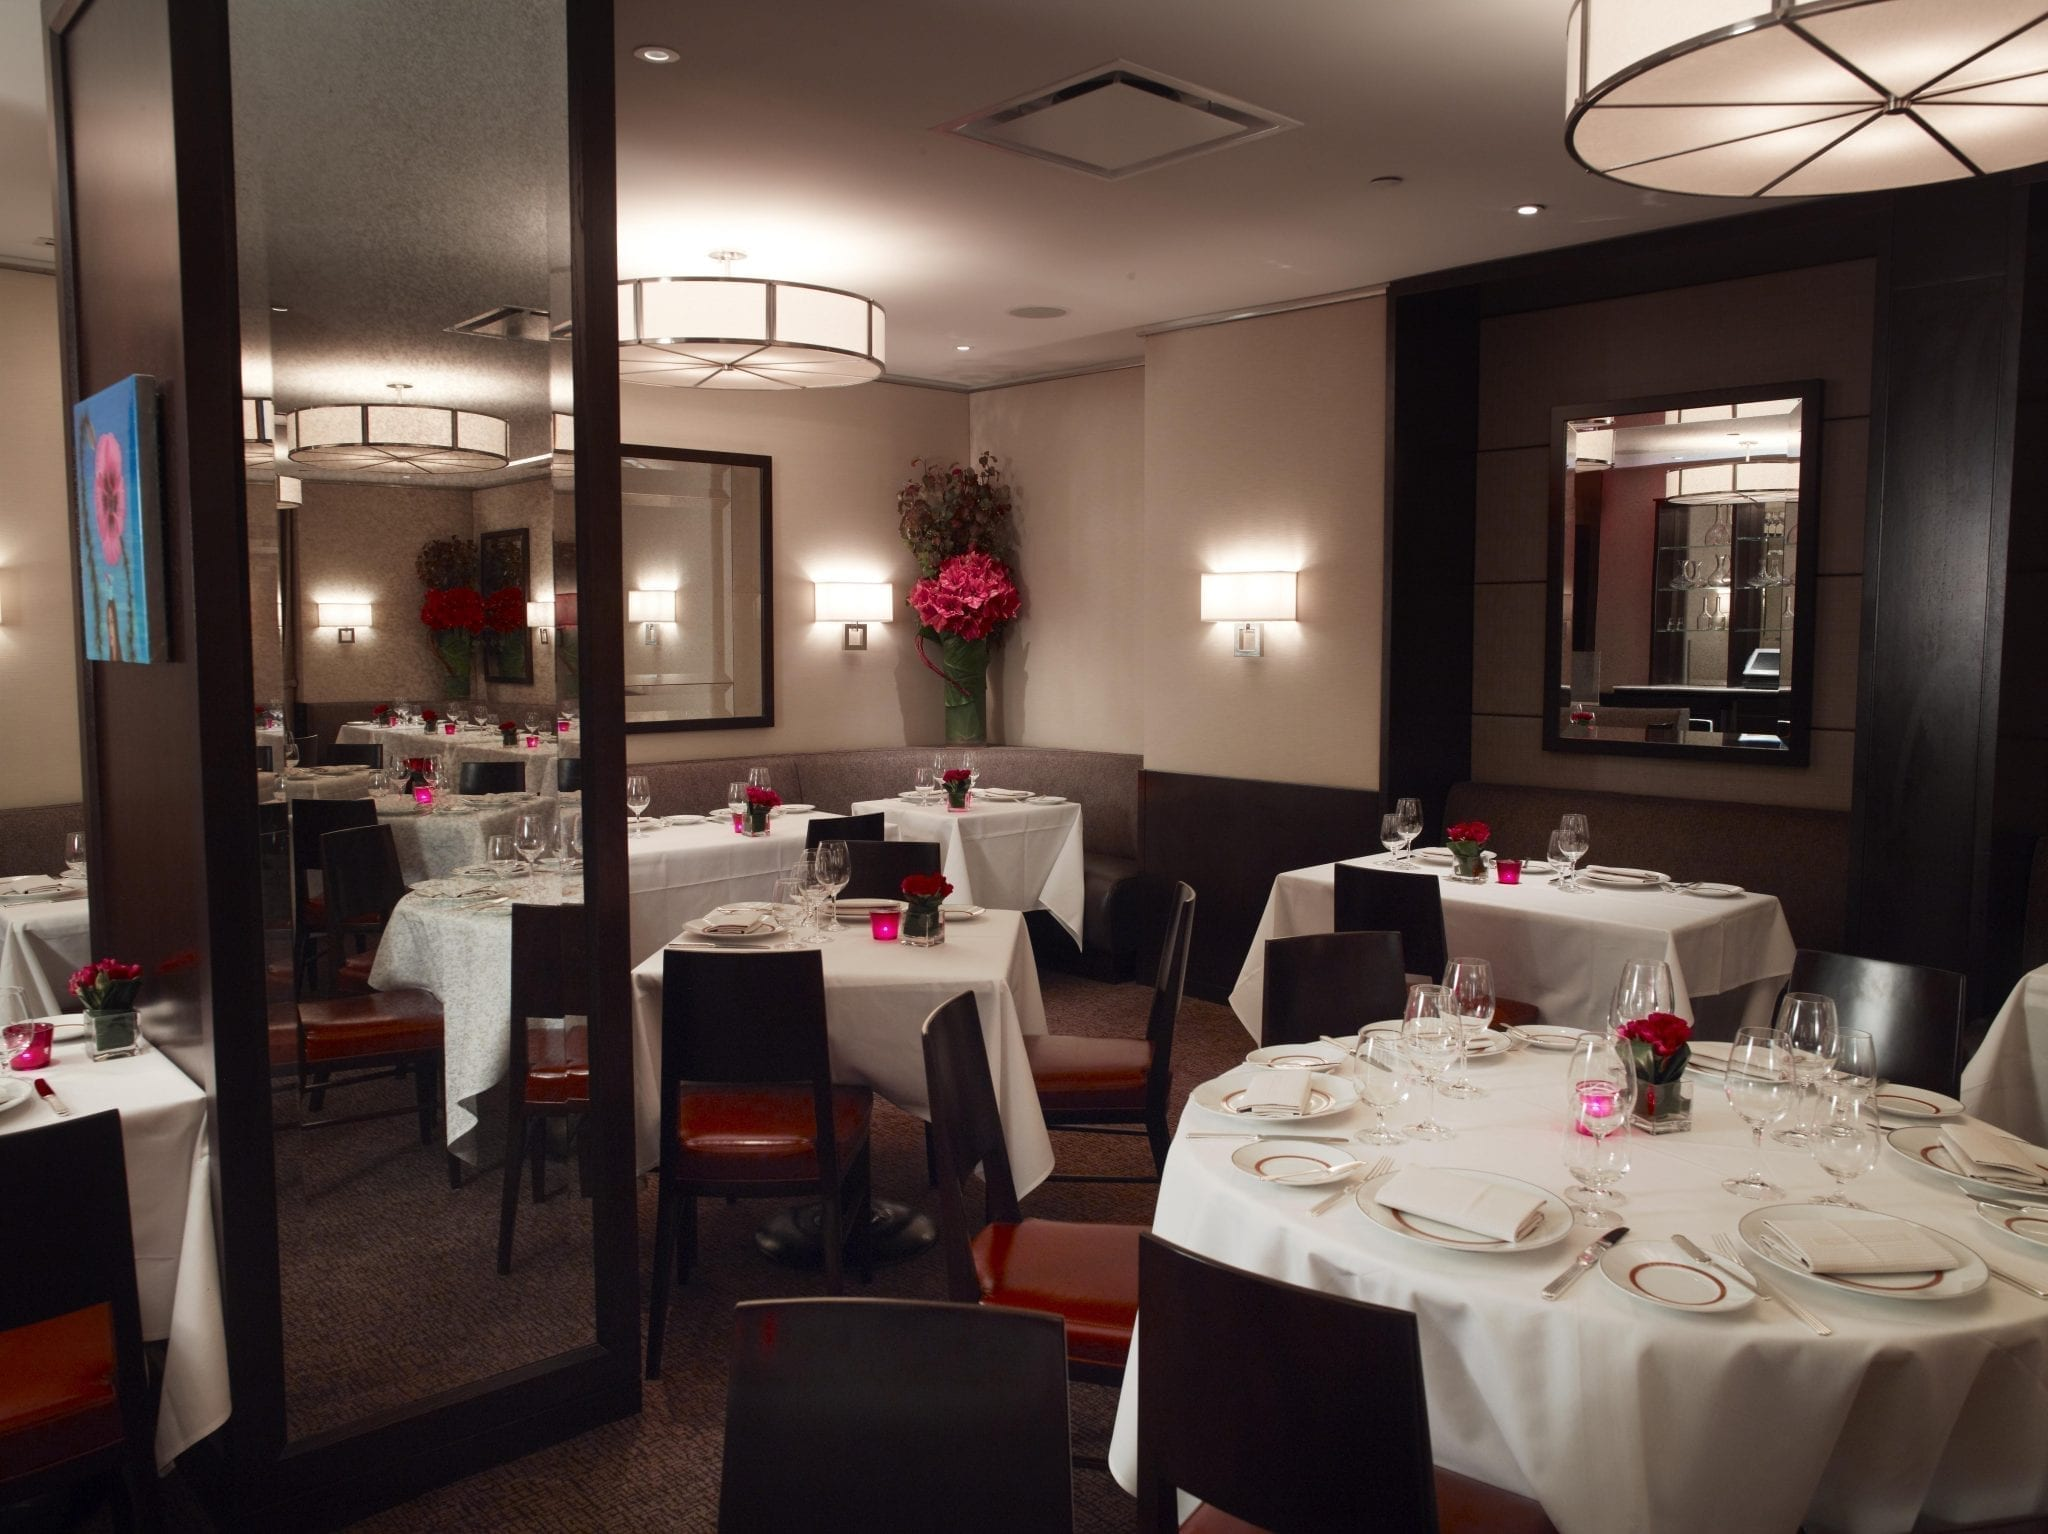 Corner of a dining area, inside Cafe Boulud. A mix of round and square tables are placed around the room, each dressed in a white cloth. A very long table is placed against the far wall, with booth seating on one side. Photography by B. Milne.